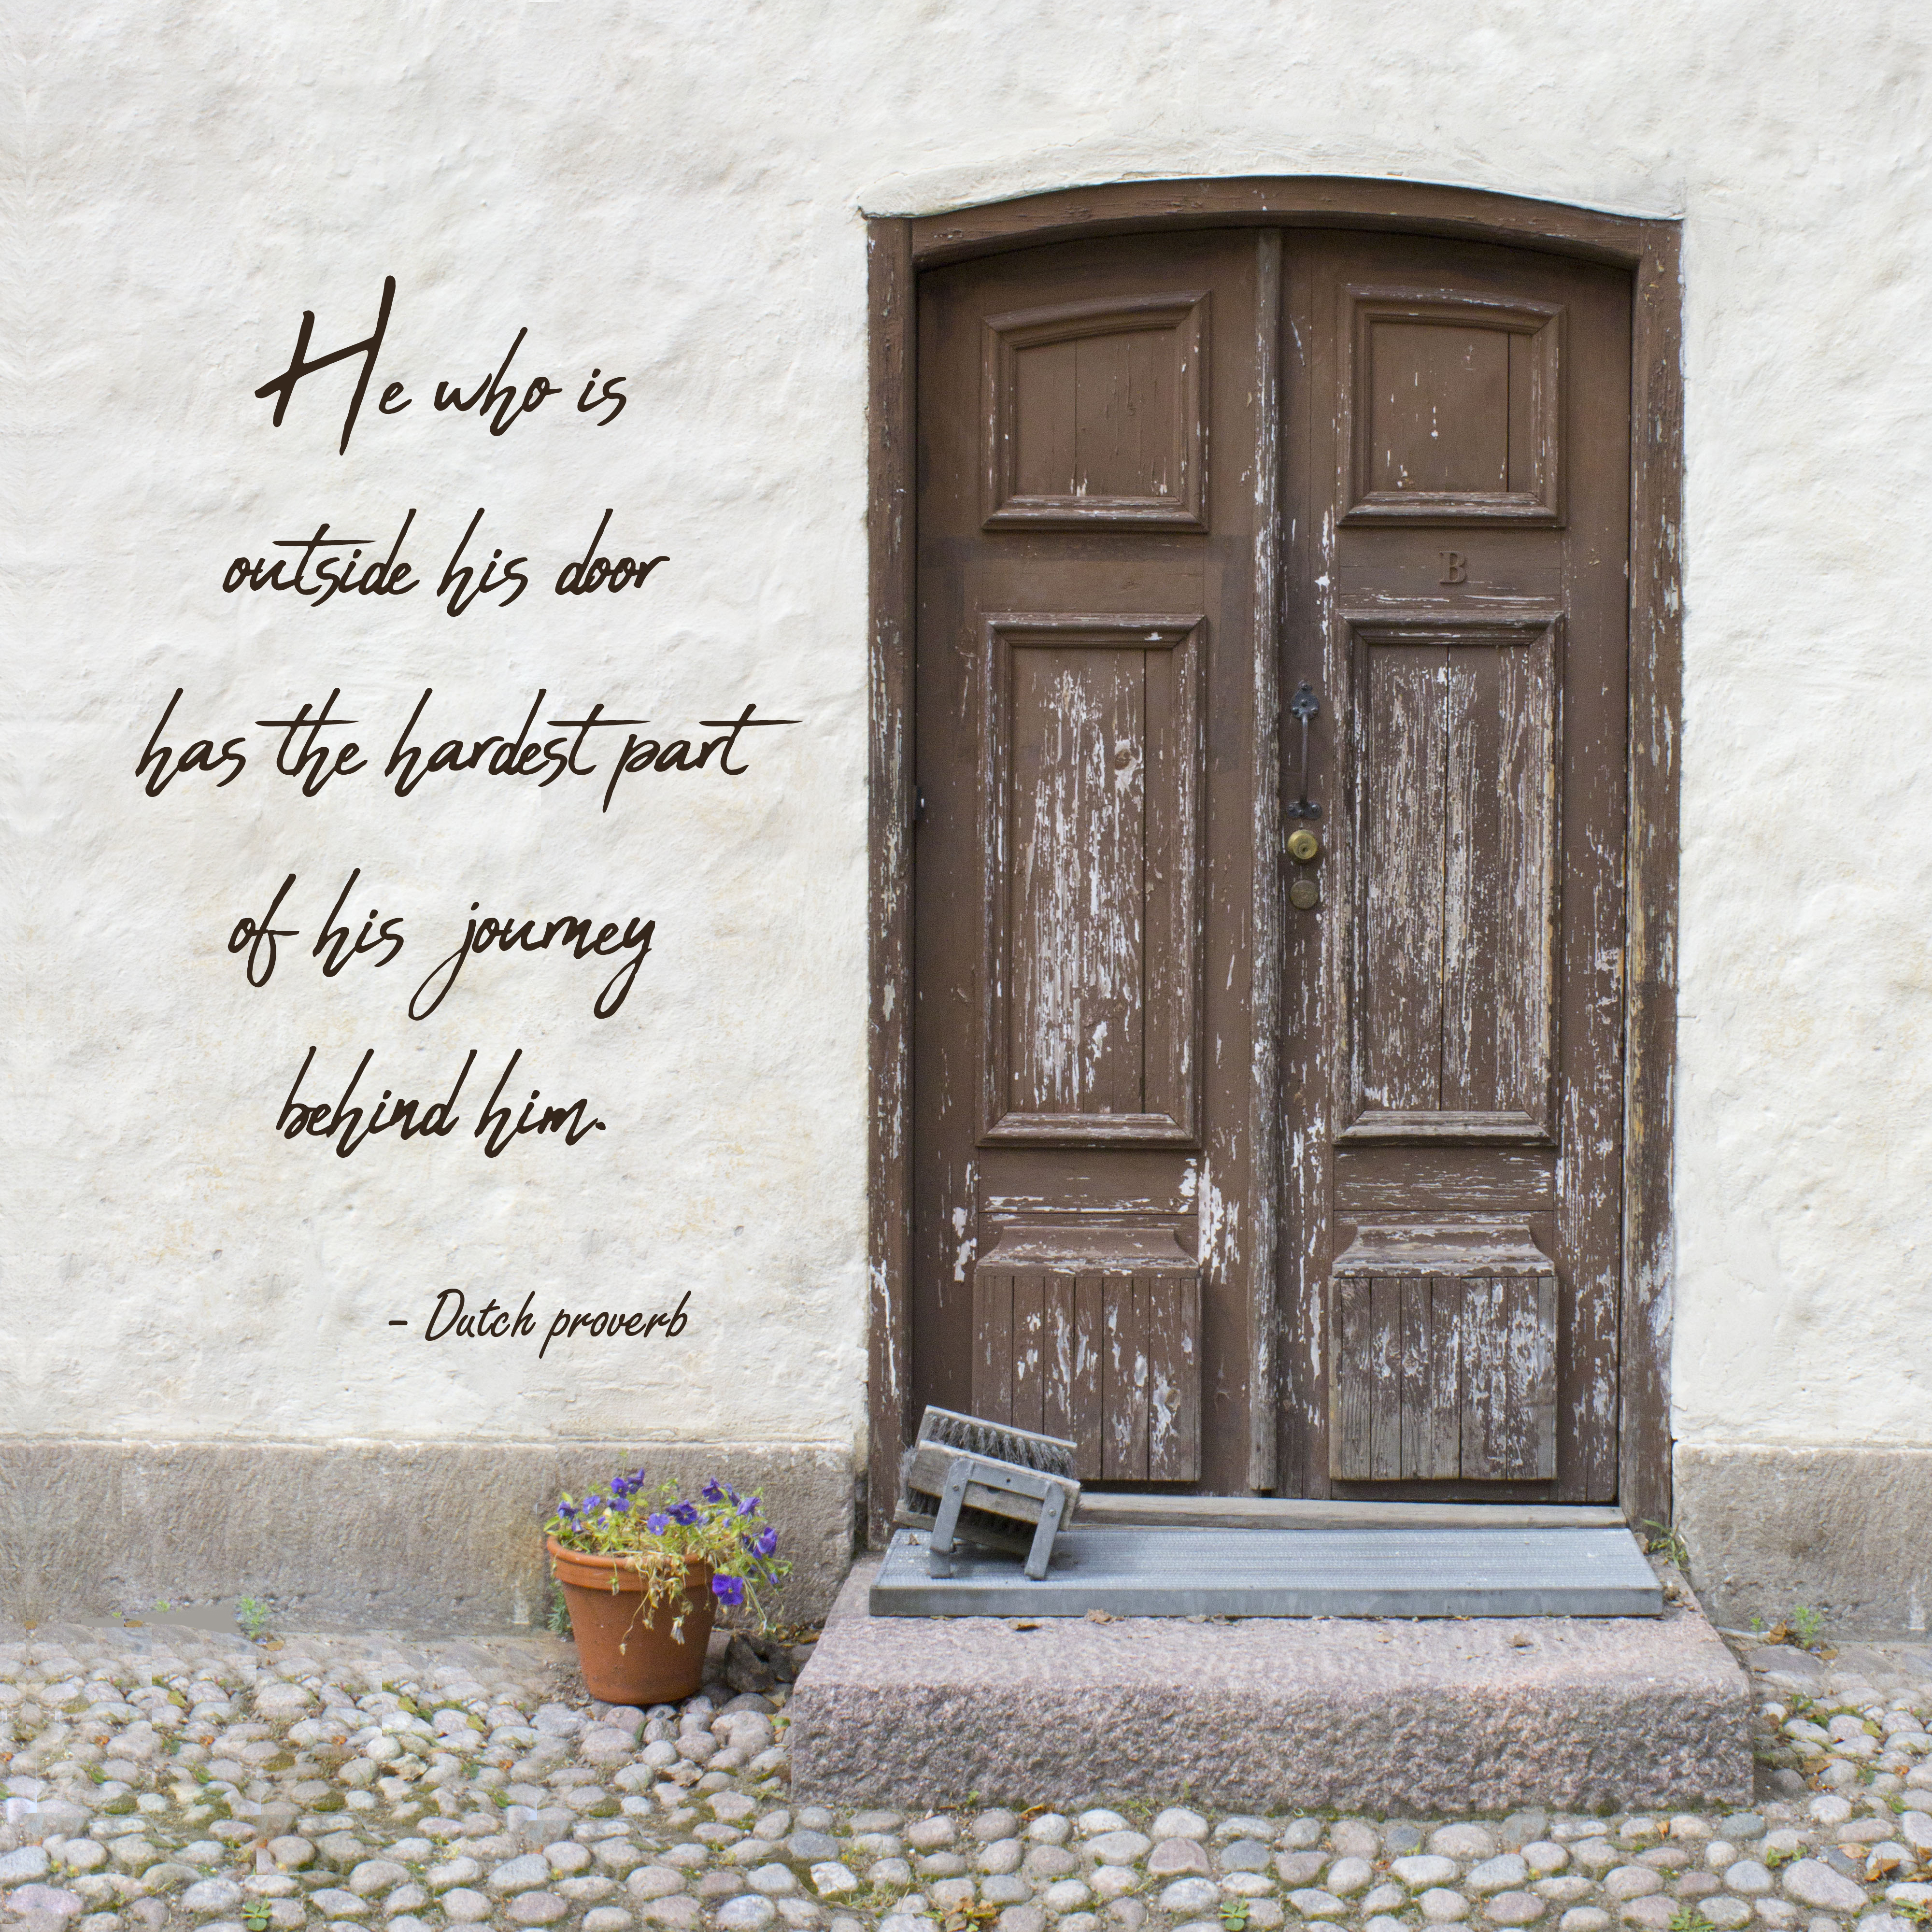 Download and print our free travel word art in either ... & Inspirational travel quote print with European door | Chica and Jo